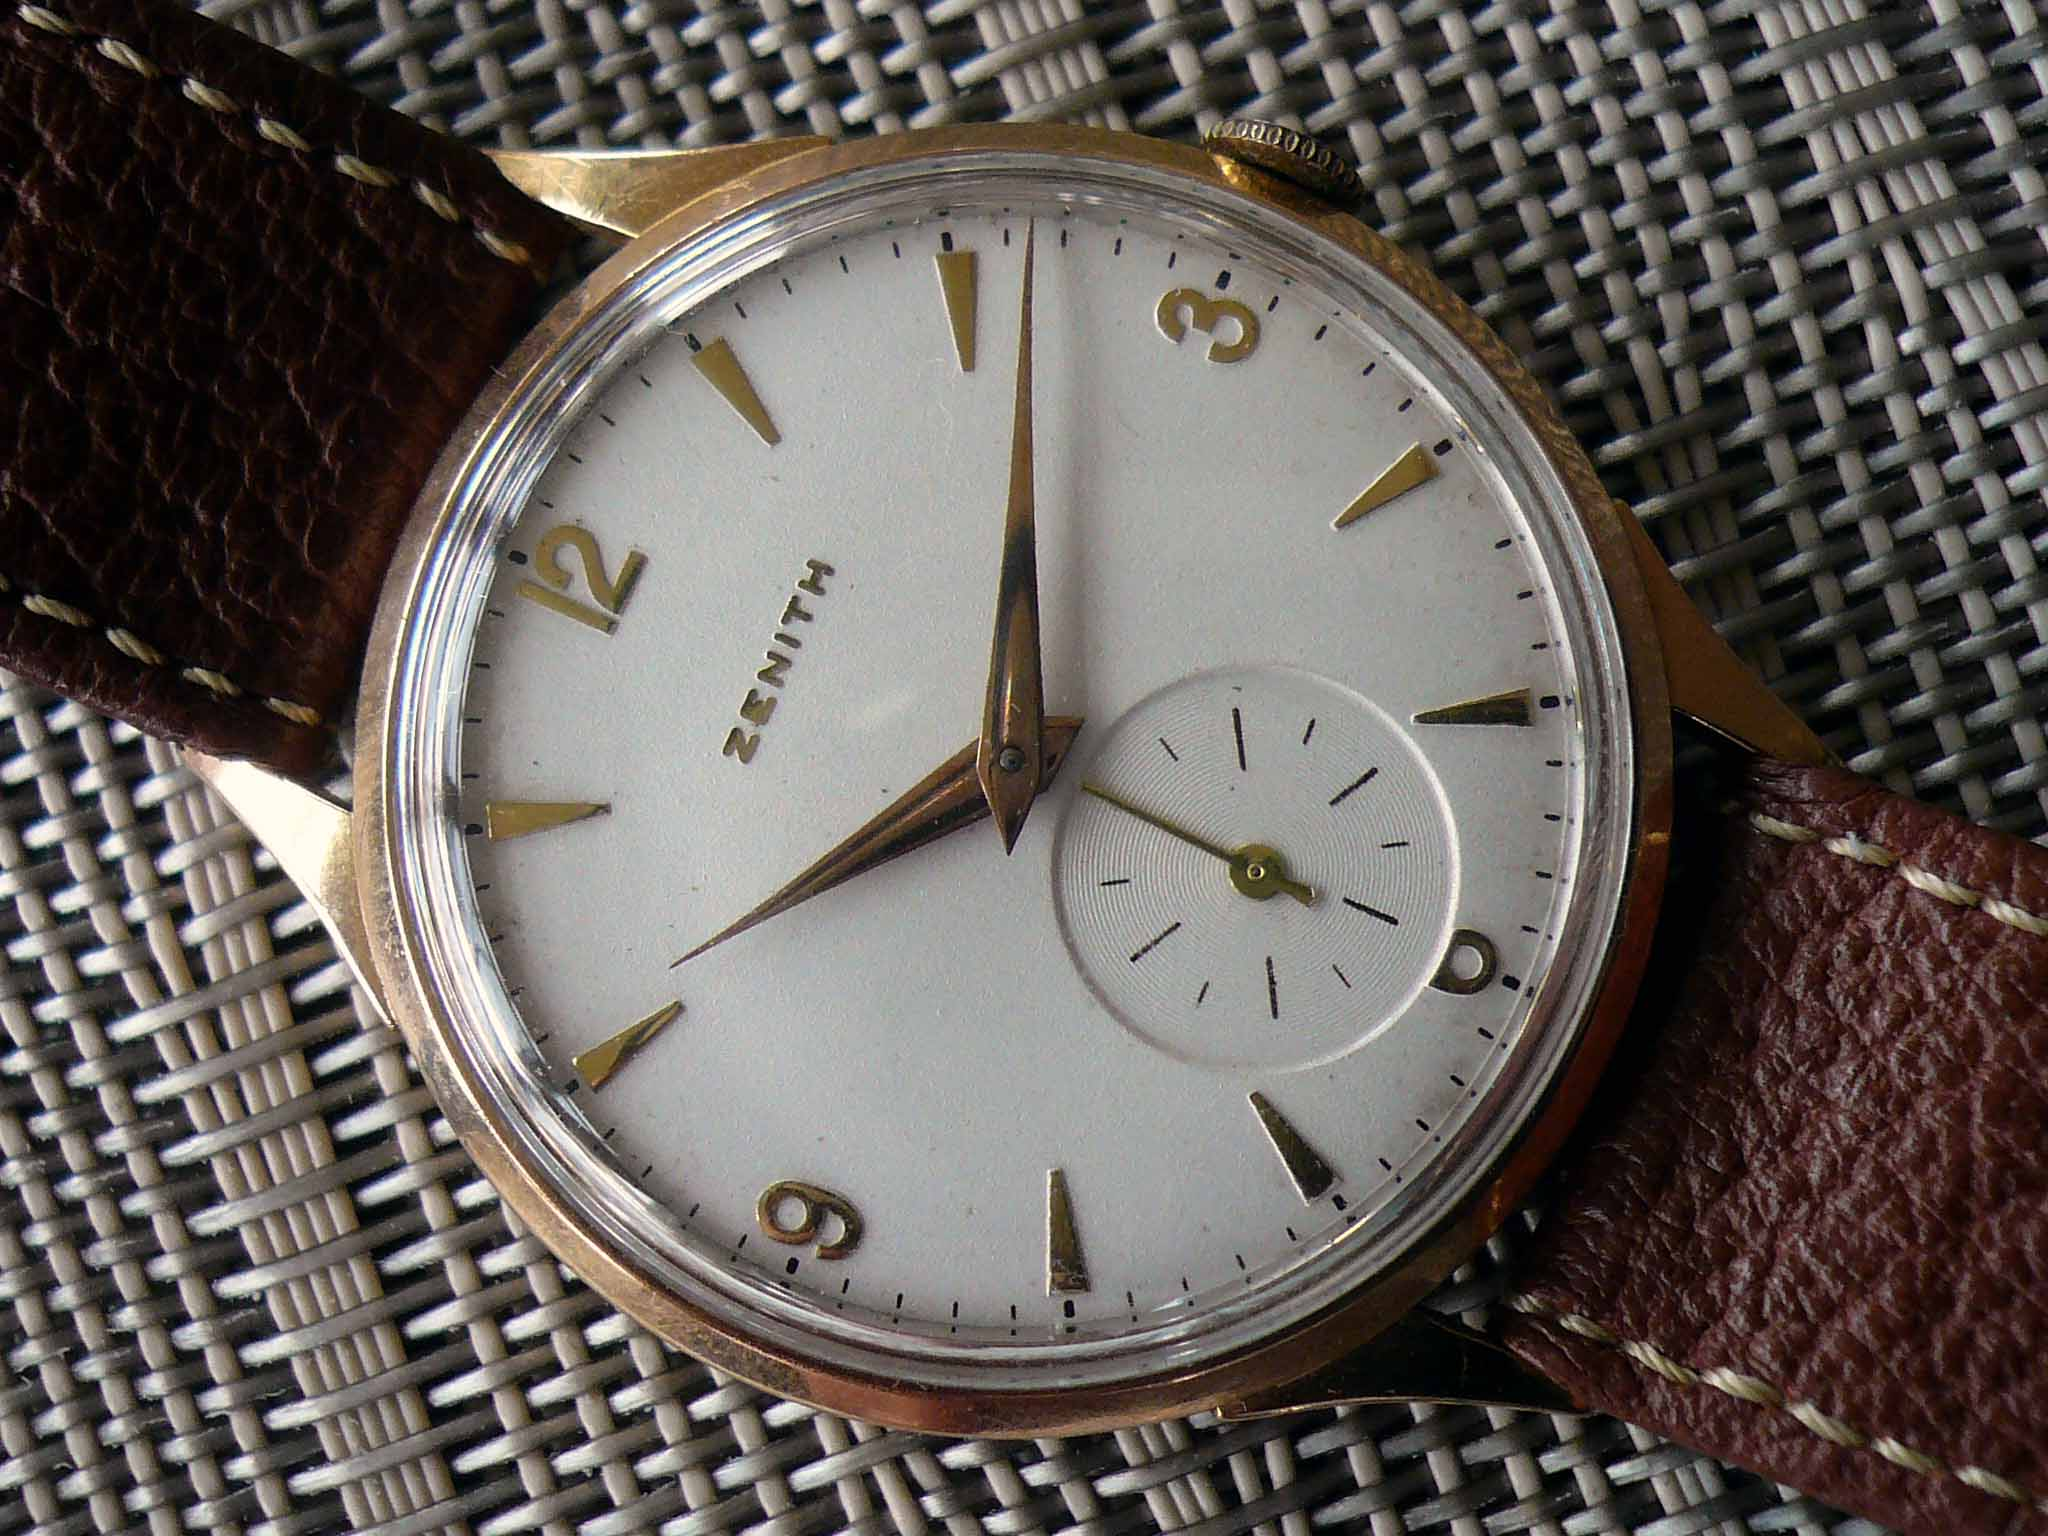 Vintage Zenith Watch